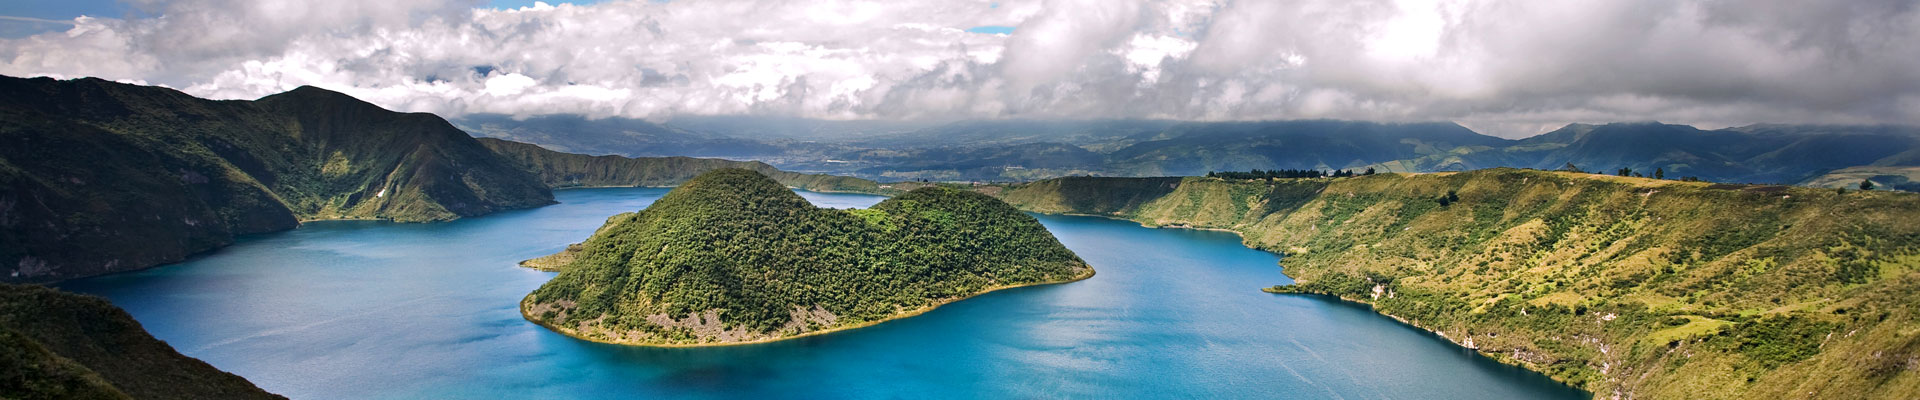 A Green hill and blue water in Ecuador